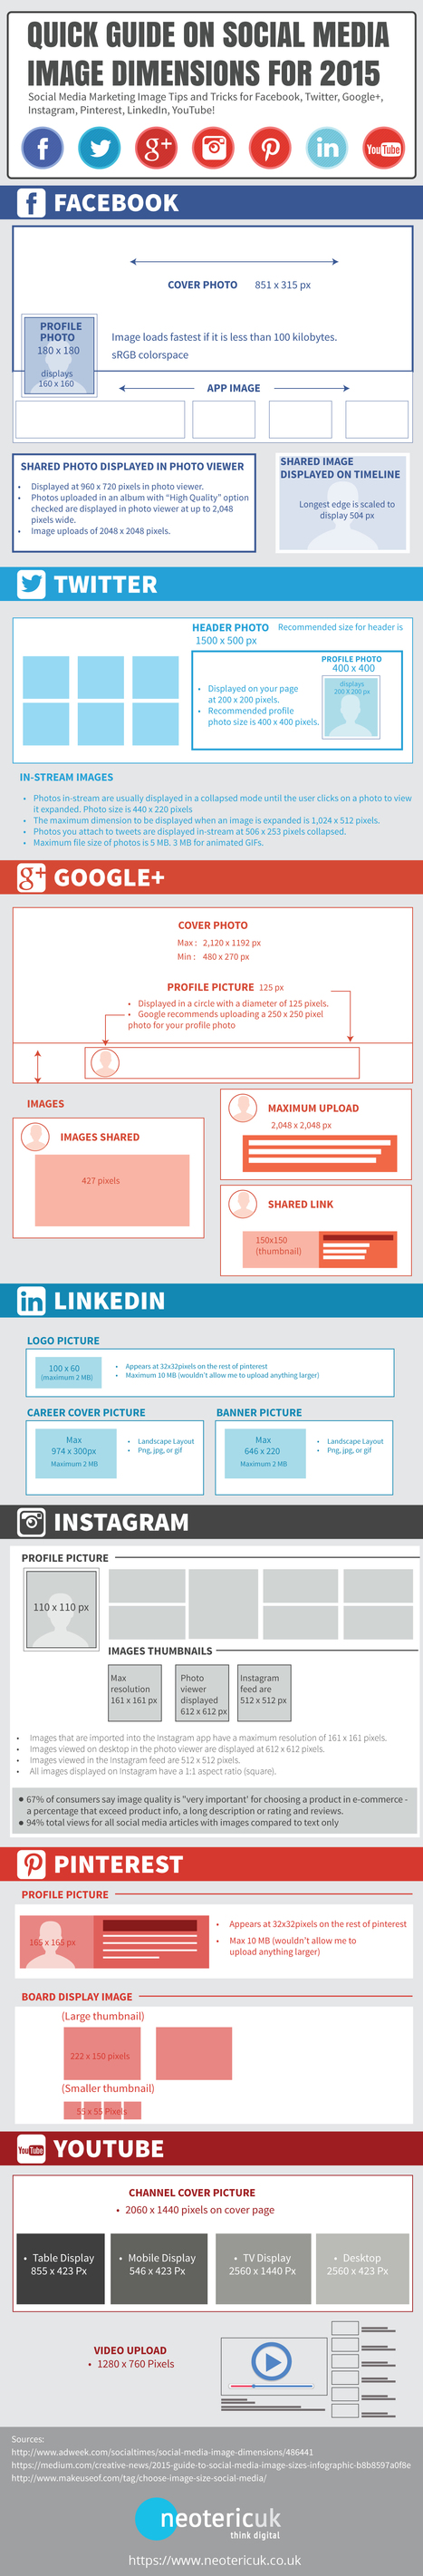 Social Media Image Dimensions For 2015 | Web Design and Ecommerce | Scoop.it